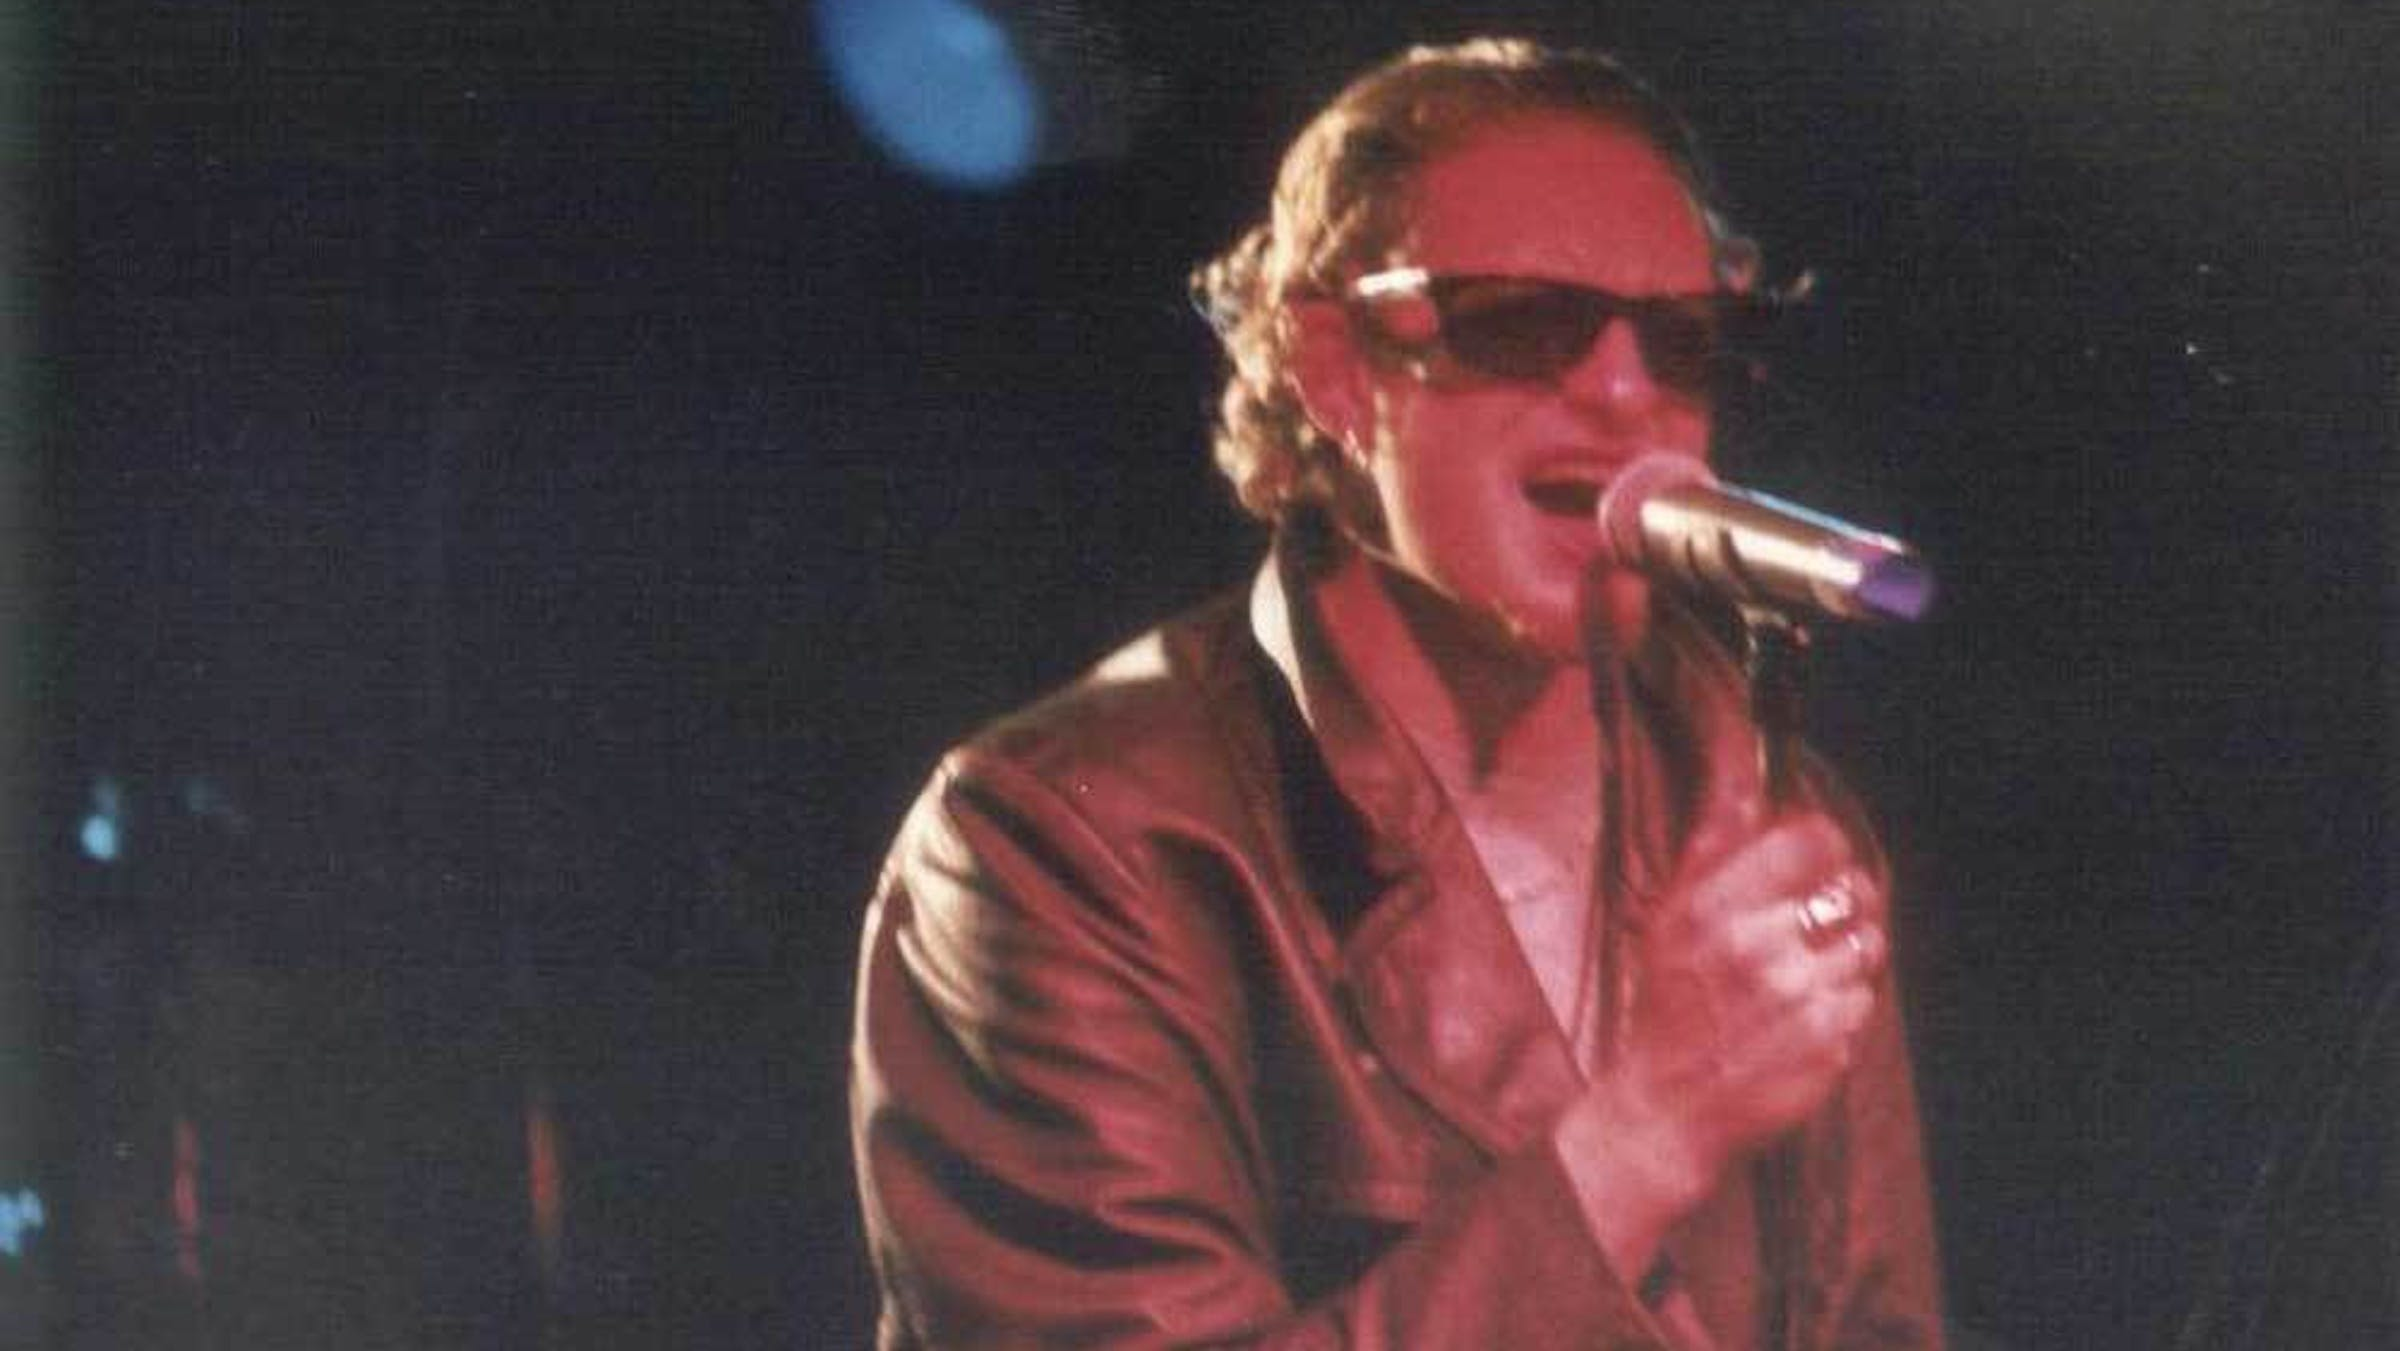 Rock And Metal Stars Pay Tribute To Layne Staley